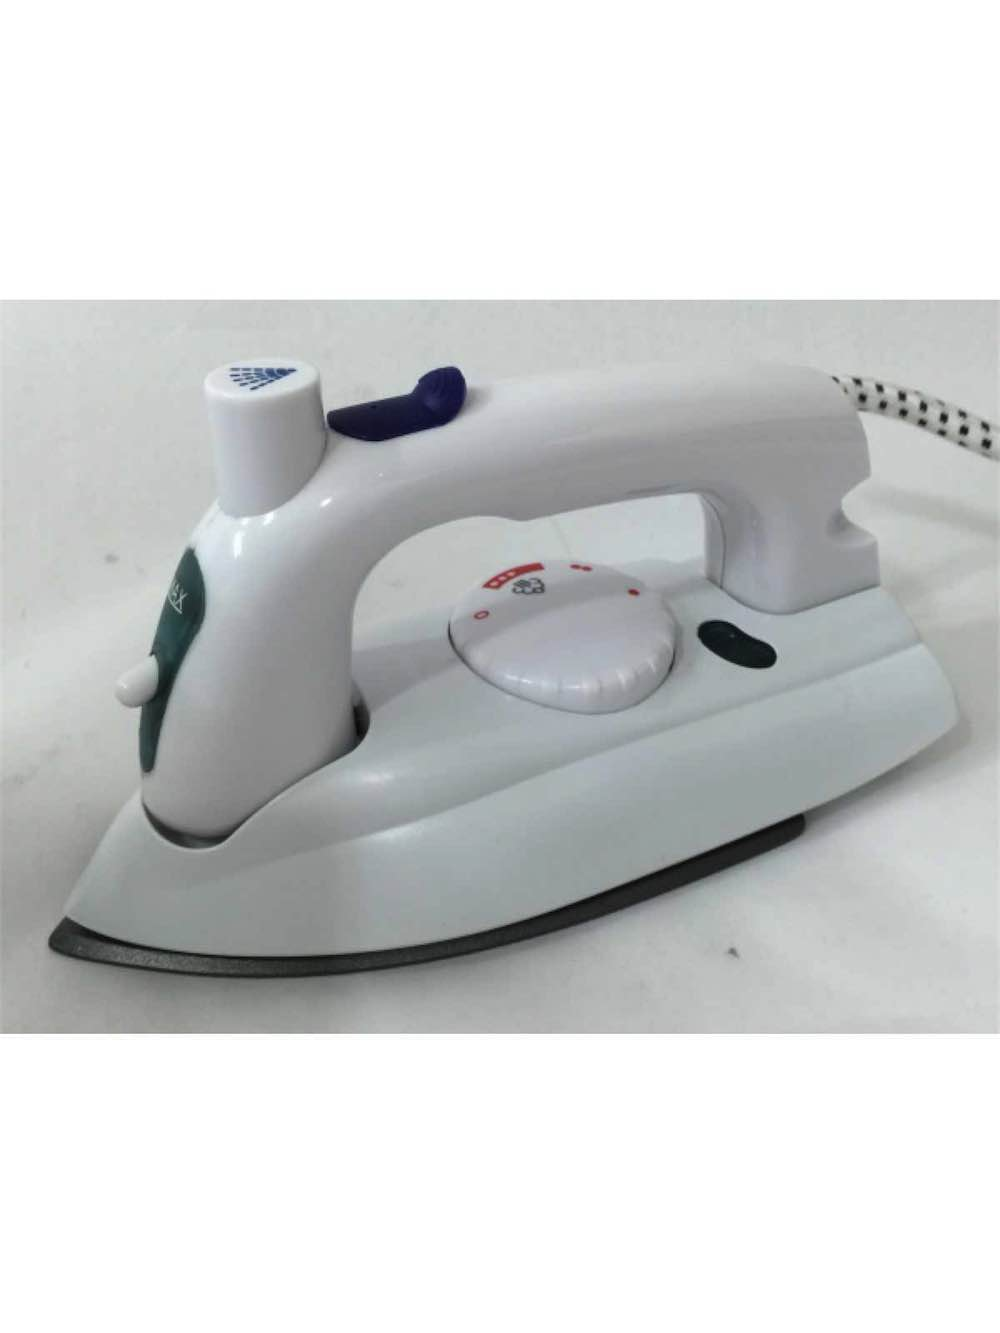 Korjo Travel Iron Steam And Dry Dual Voltage By Korjo